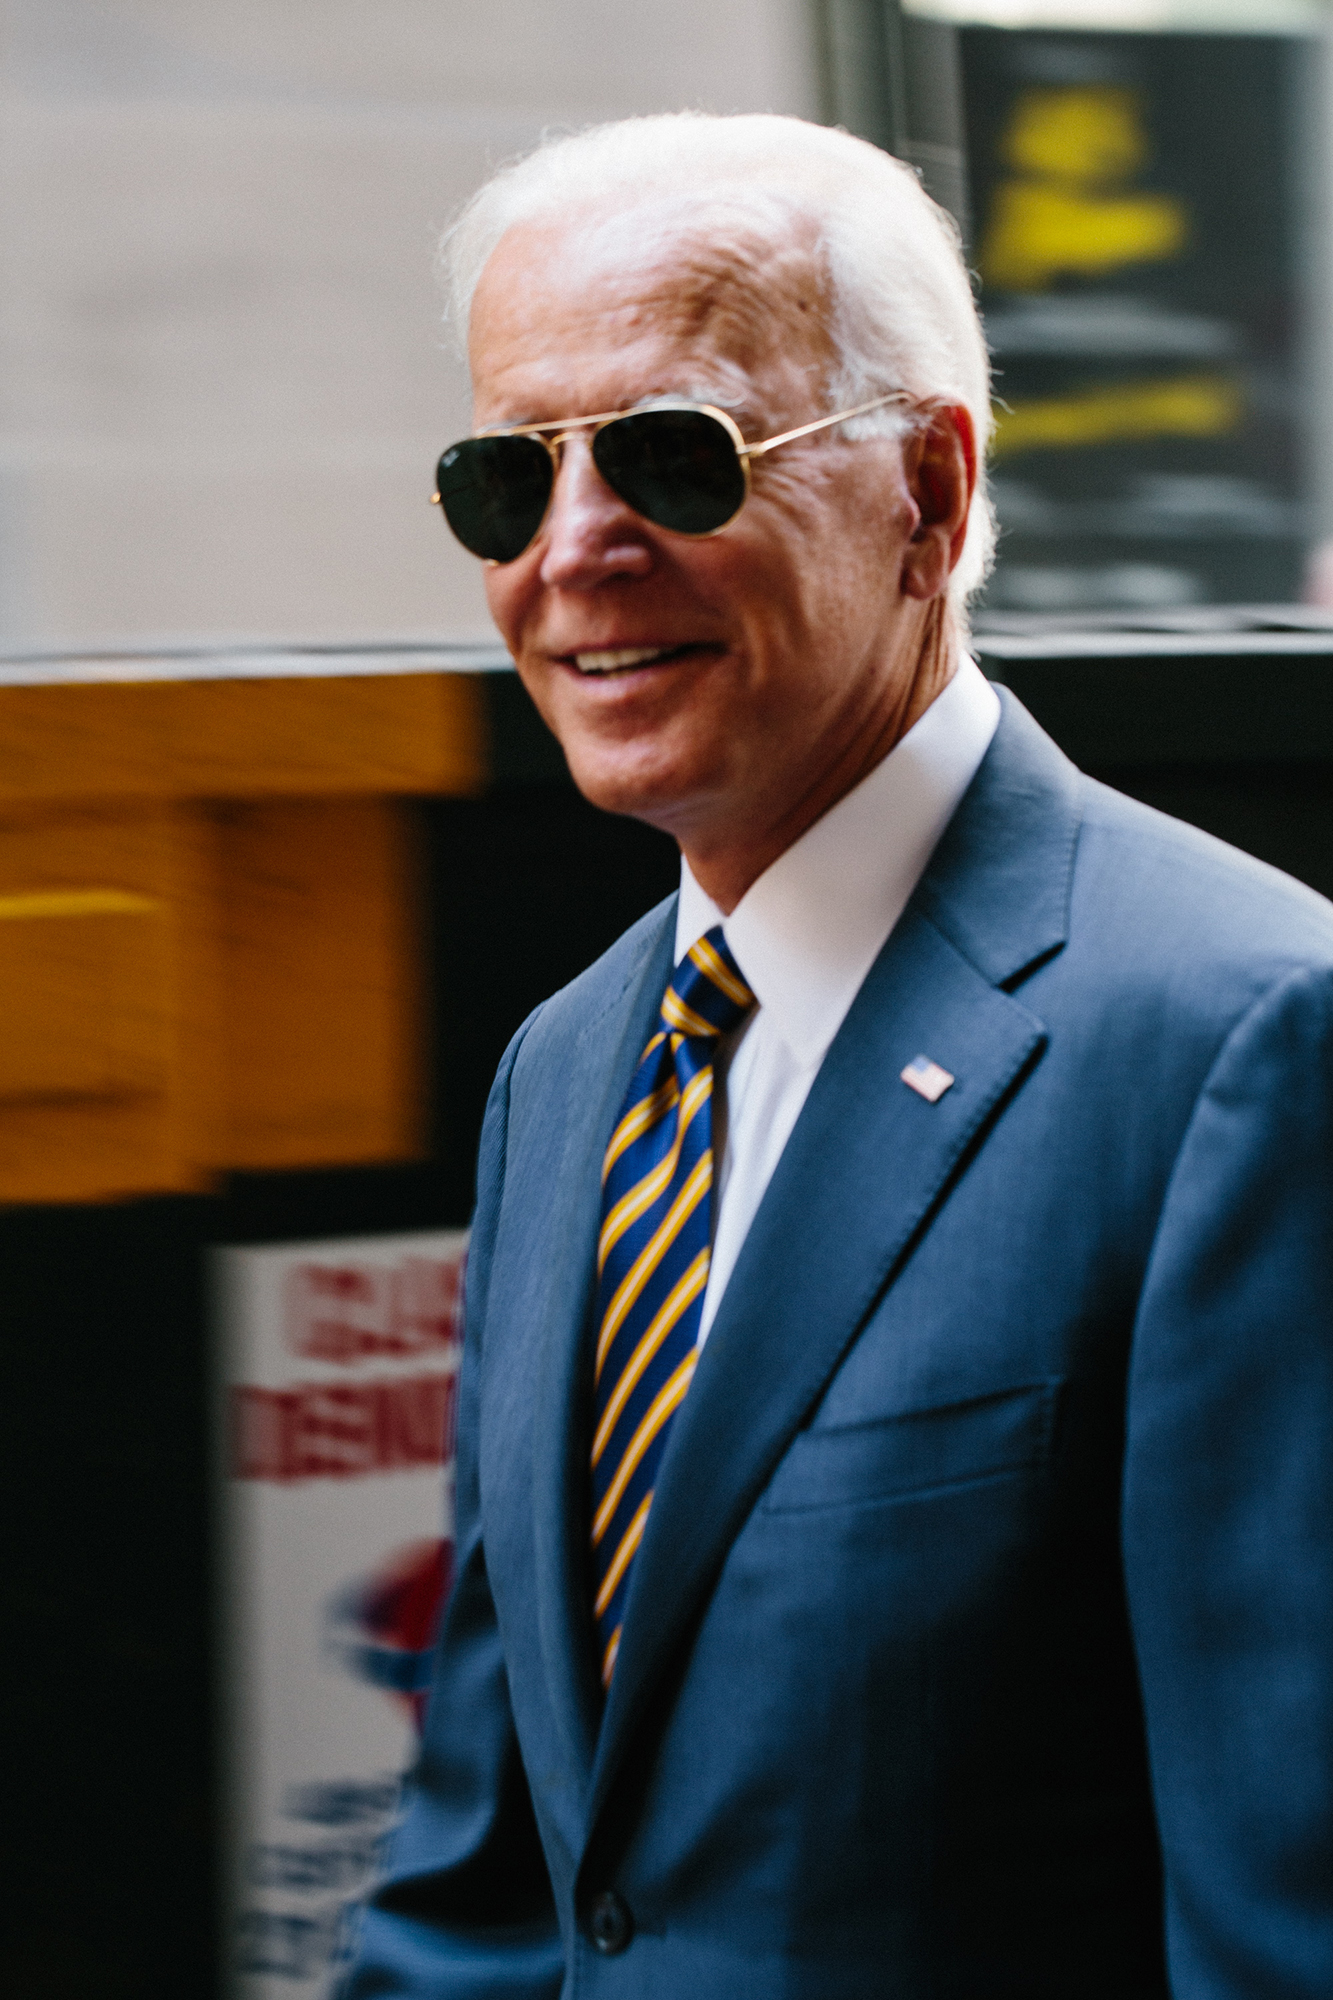 Joe Biden / Walking With The Wounded